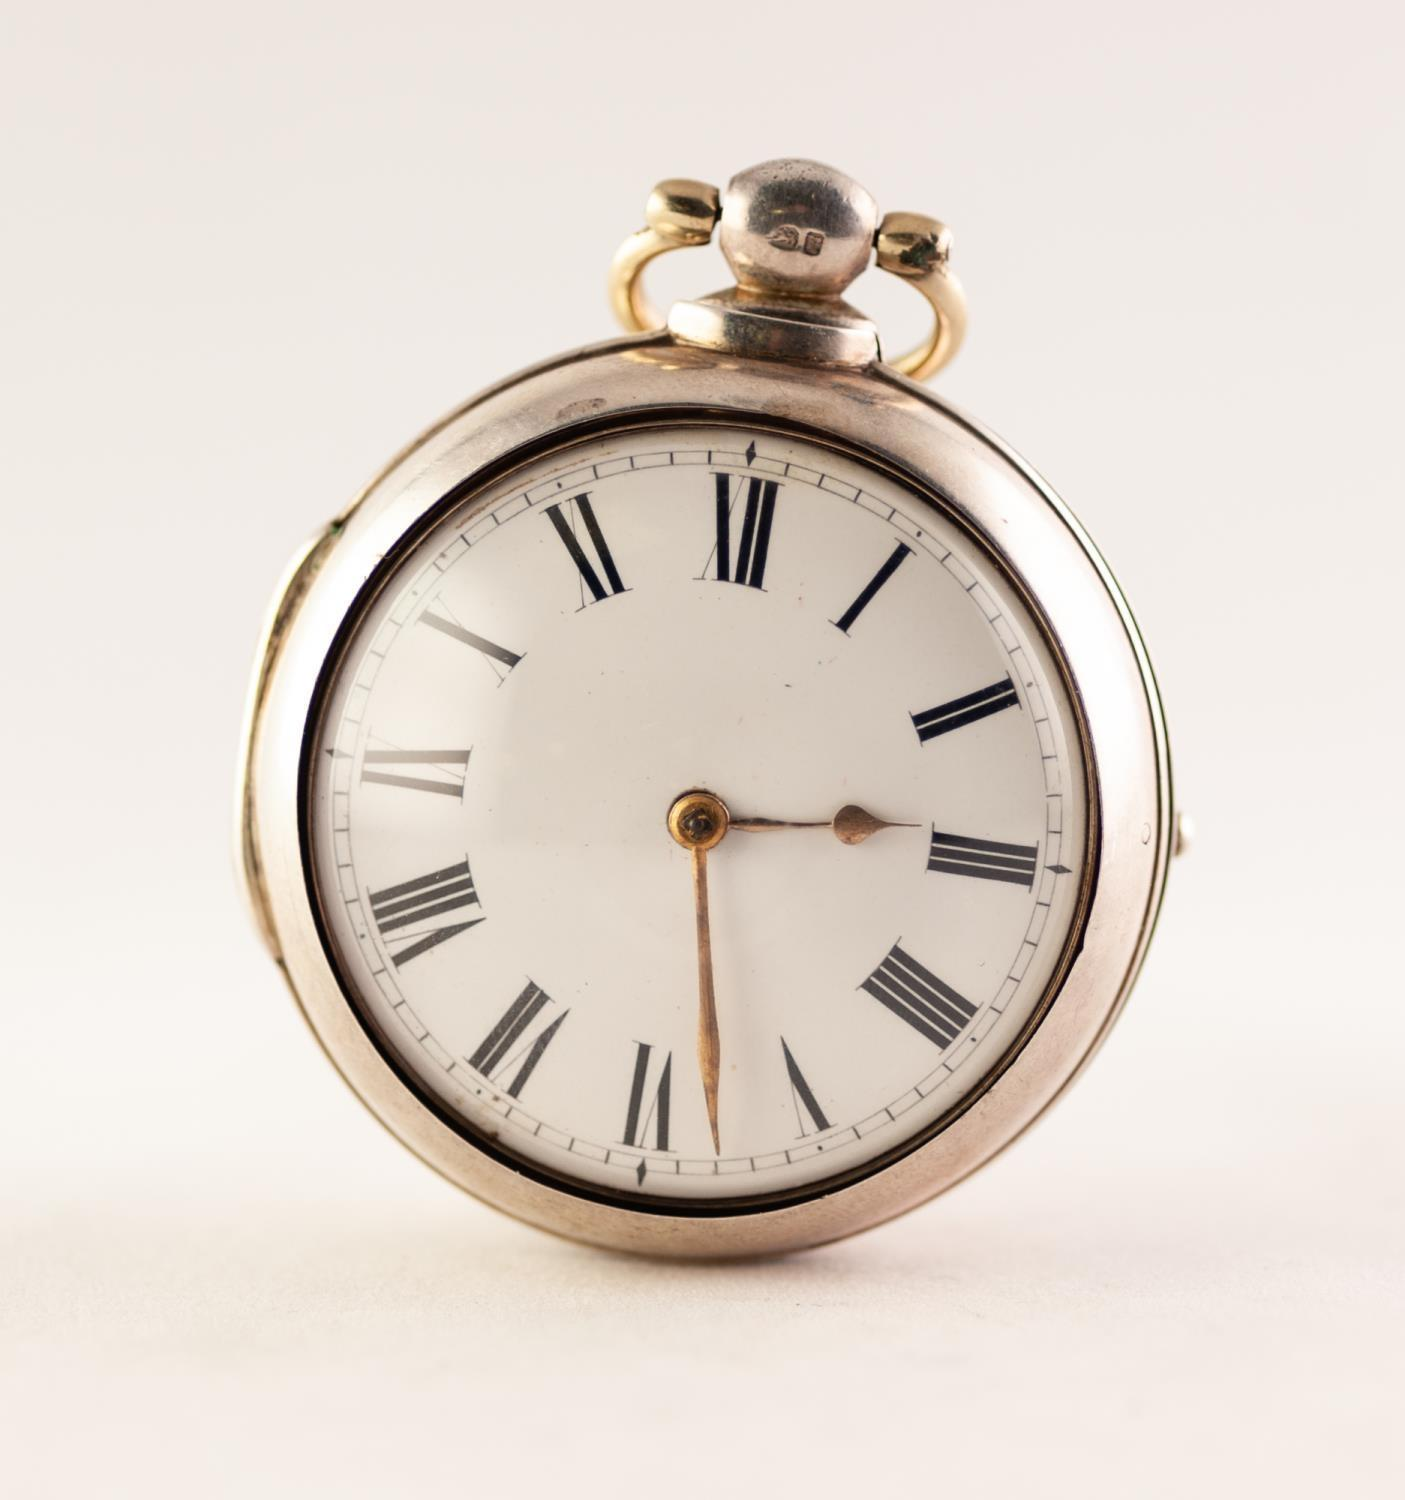 Lot 25 - GEORGIAN SILVER PAIR CASED POCKET WATCH, FUSEE MOVEMENT SIGNED EATON, LONDON White enamel dial